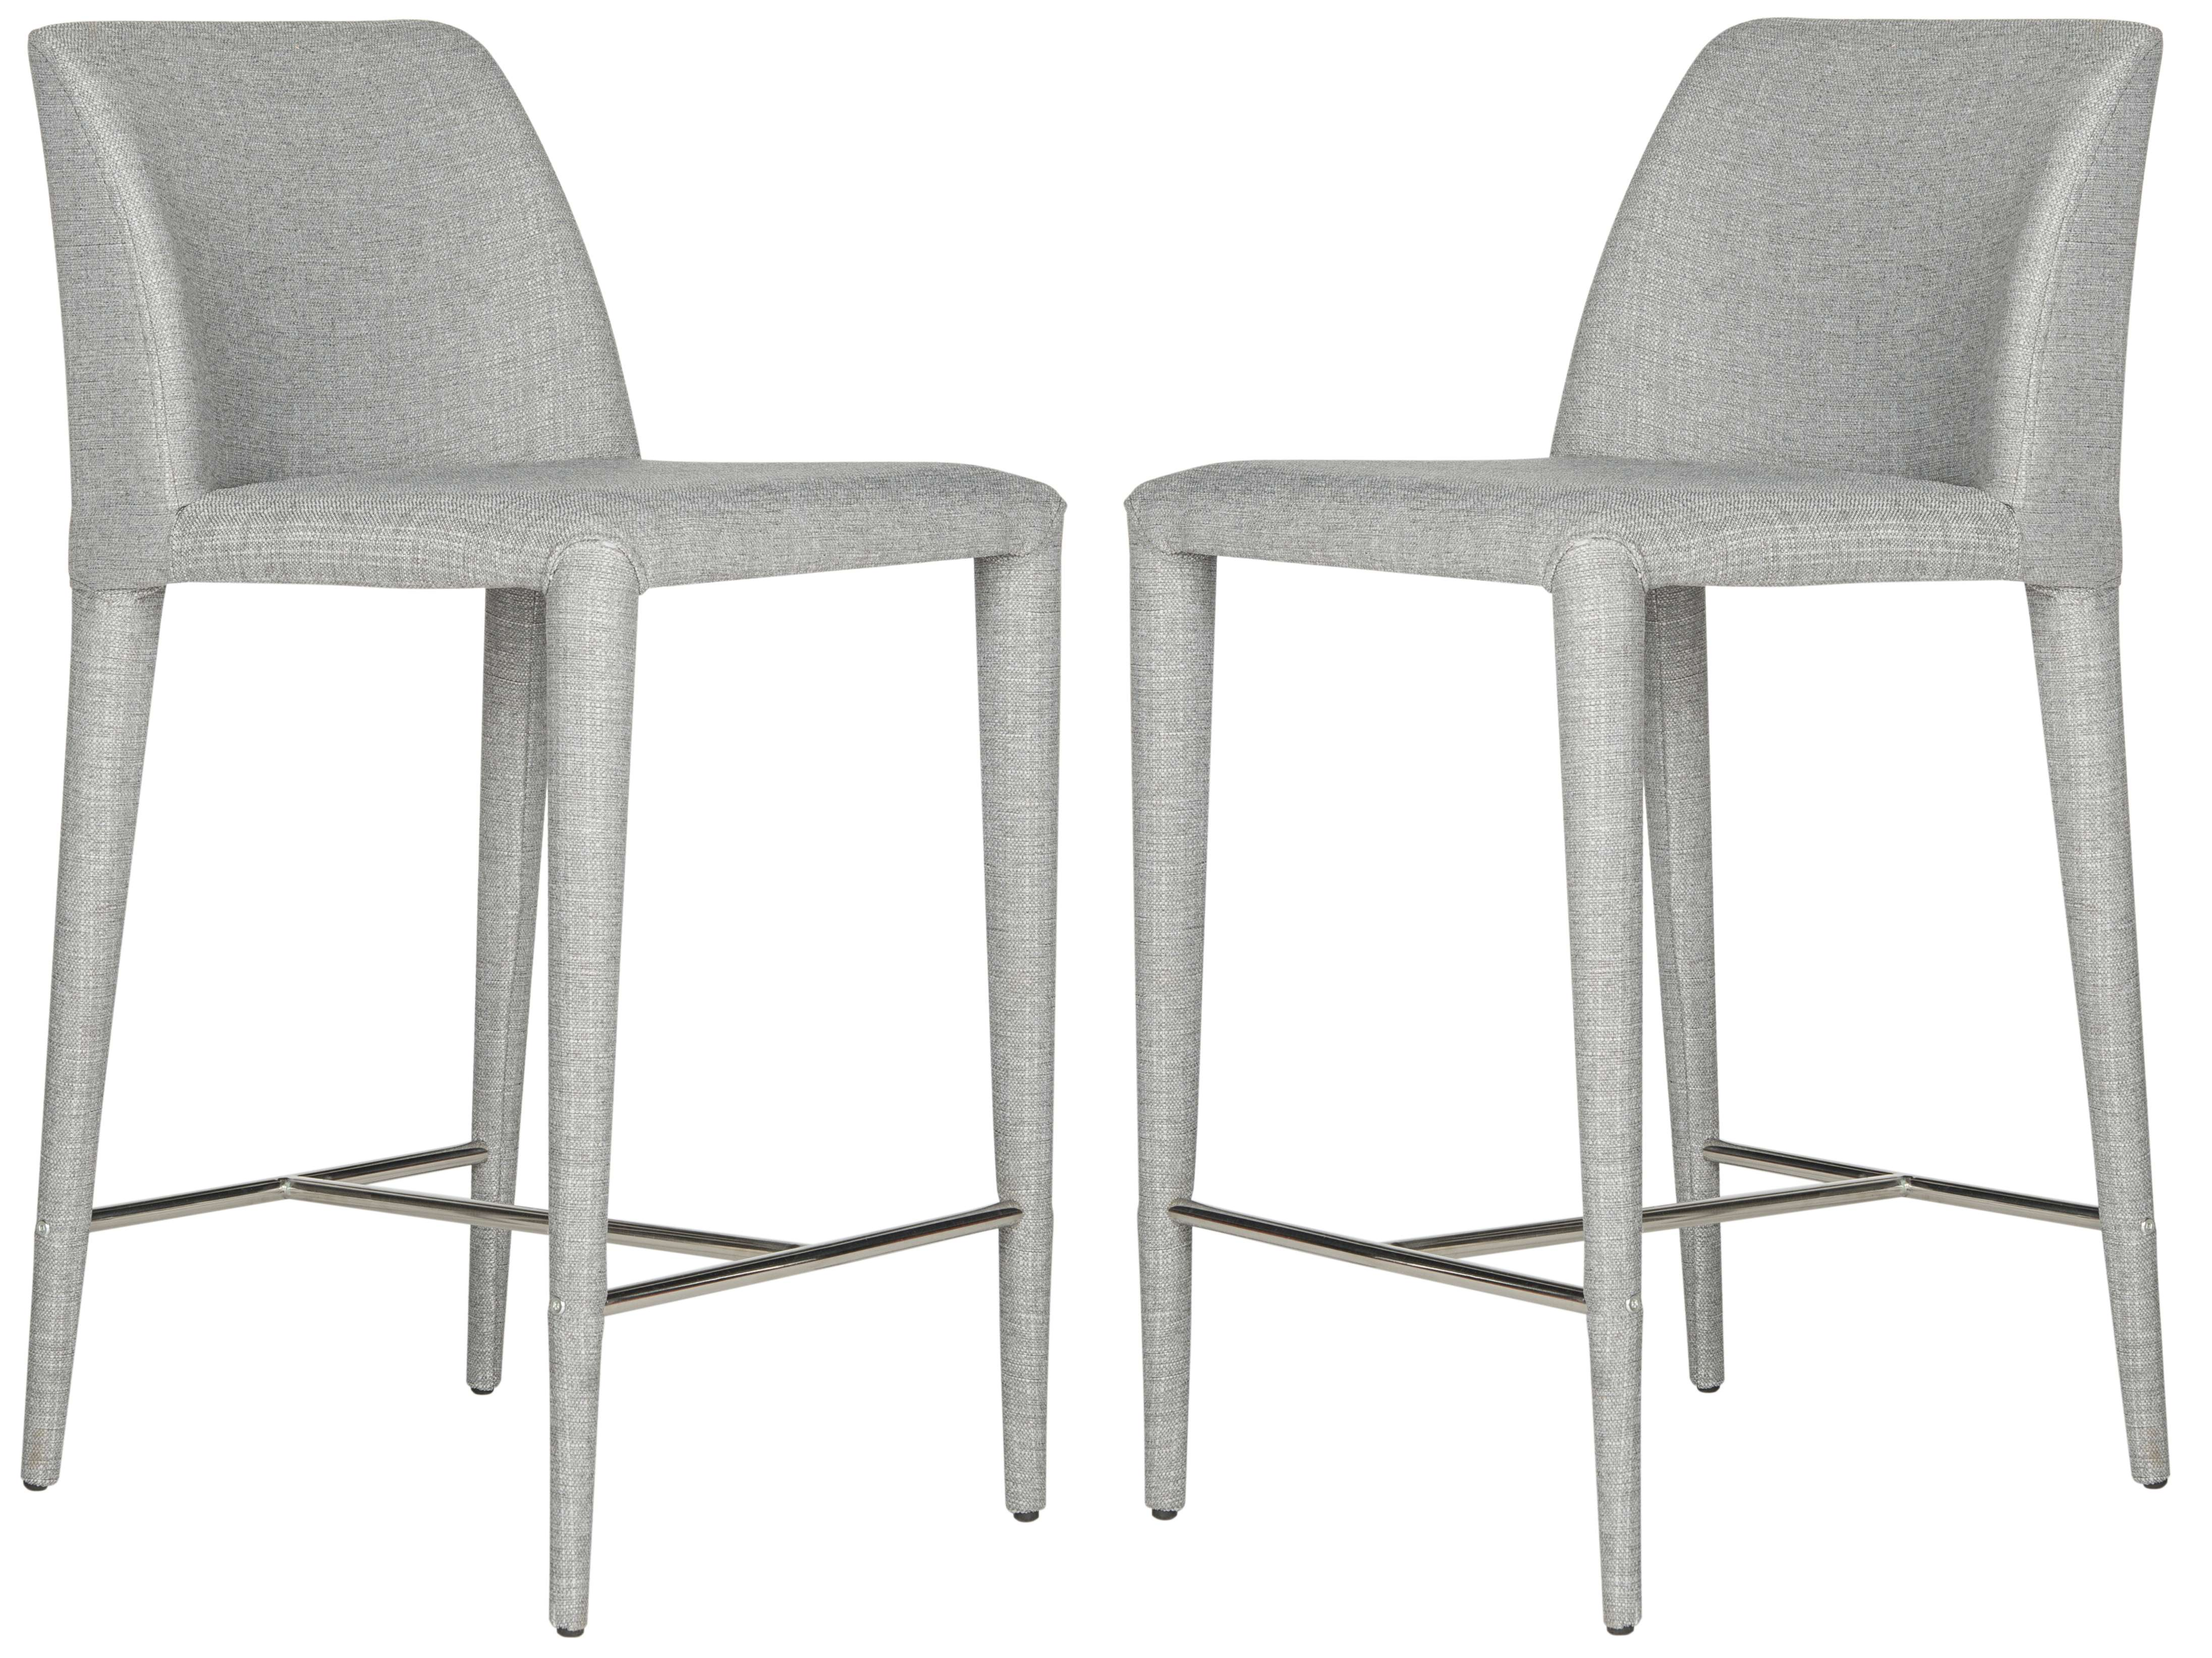 Incredible Safavieh Fox2021G Set2 Gmtry Best Dining Table And Chair Ideas Images Gmtryco